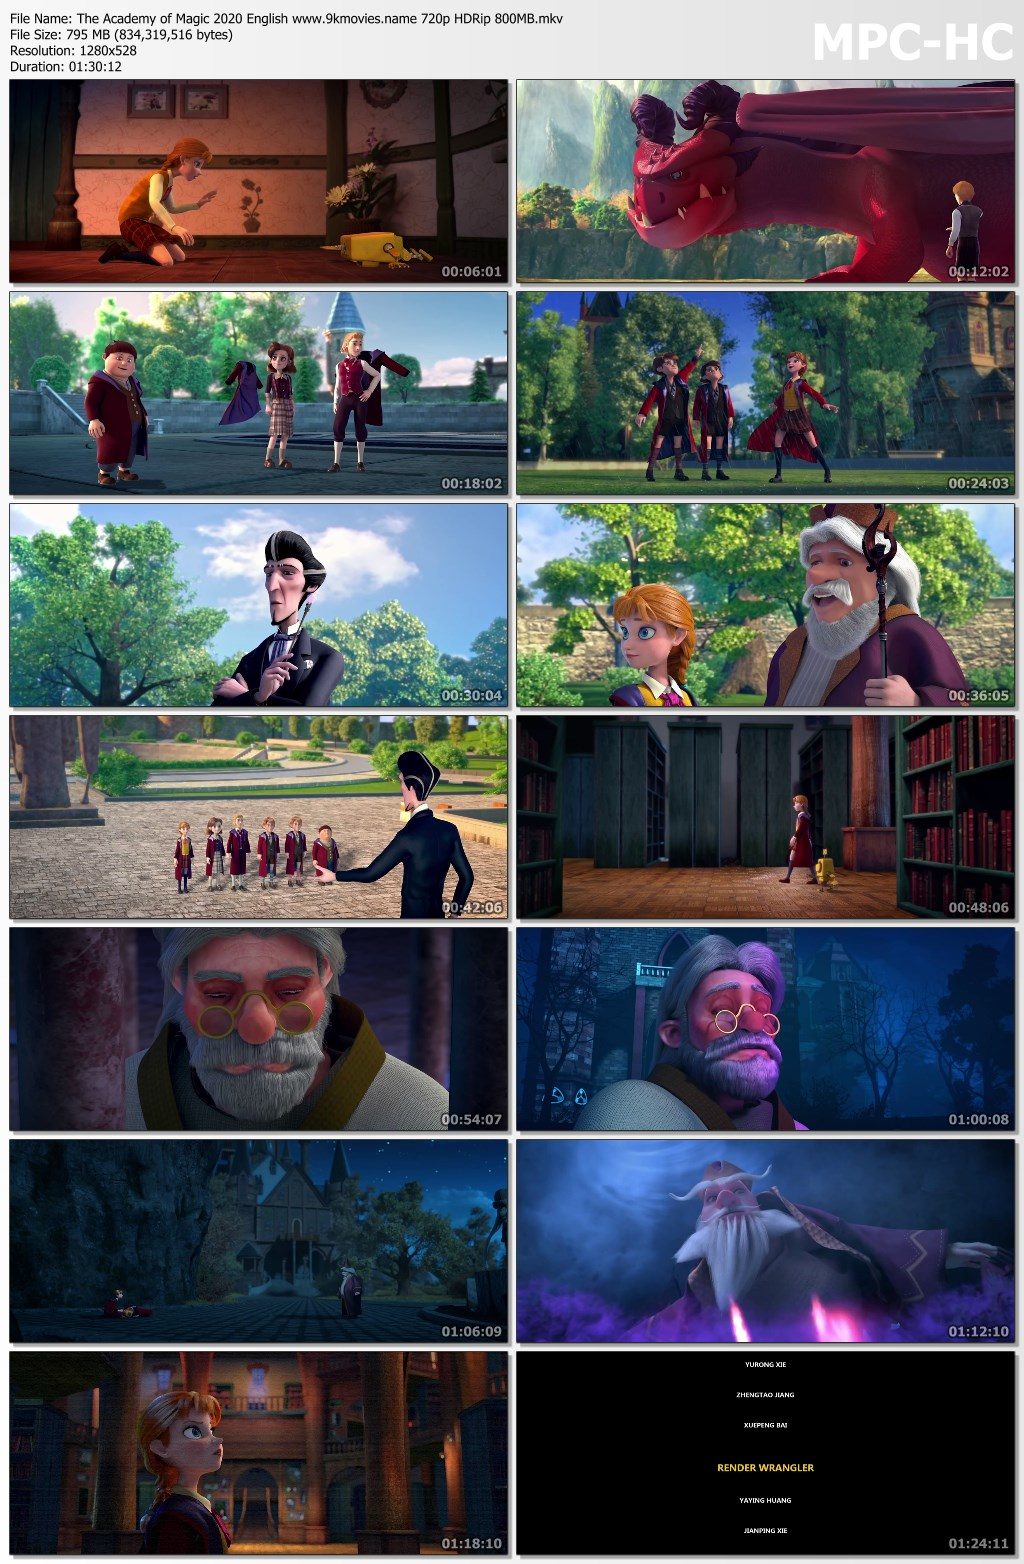 The Academy of Magic 2020 English 720p HDRip 800MB Download